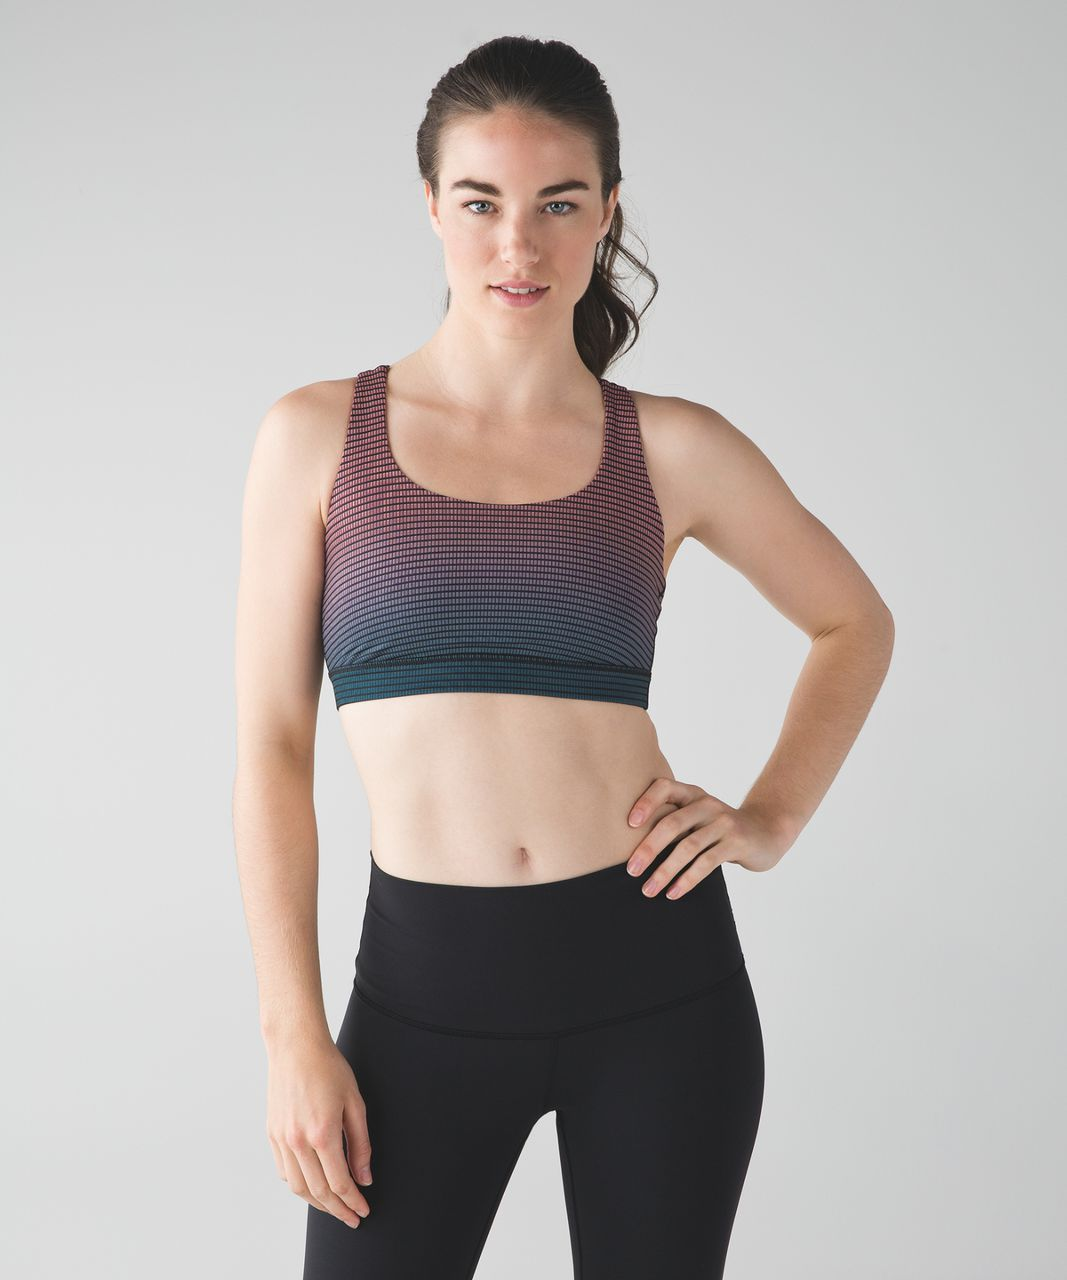 Lululemon Energy Bra - Double Gradient Yum Yum Pink Alberta Lake / Black